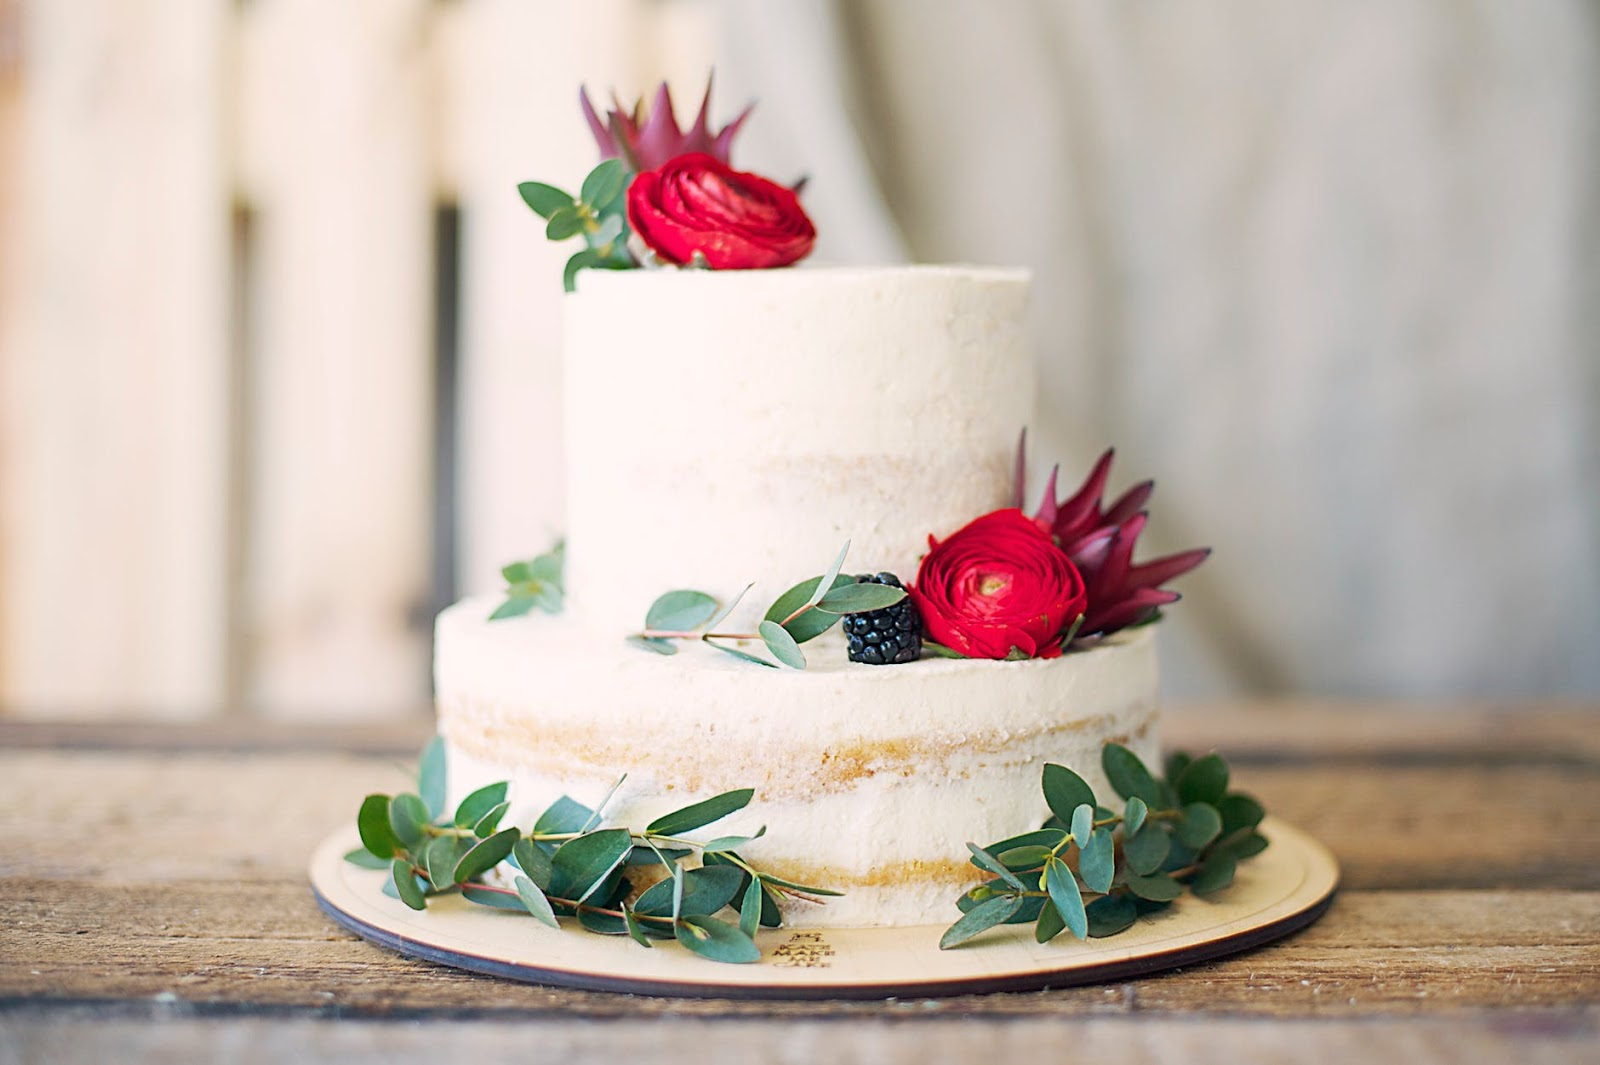 Having a Birthday or a Wedding Cake – Both Delicious and Beautiful